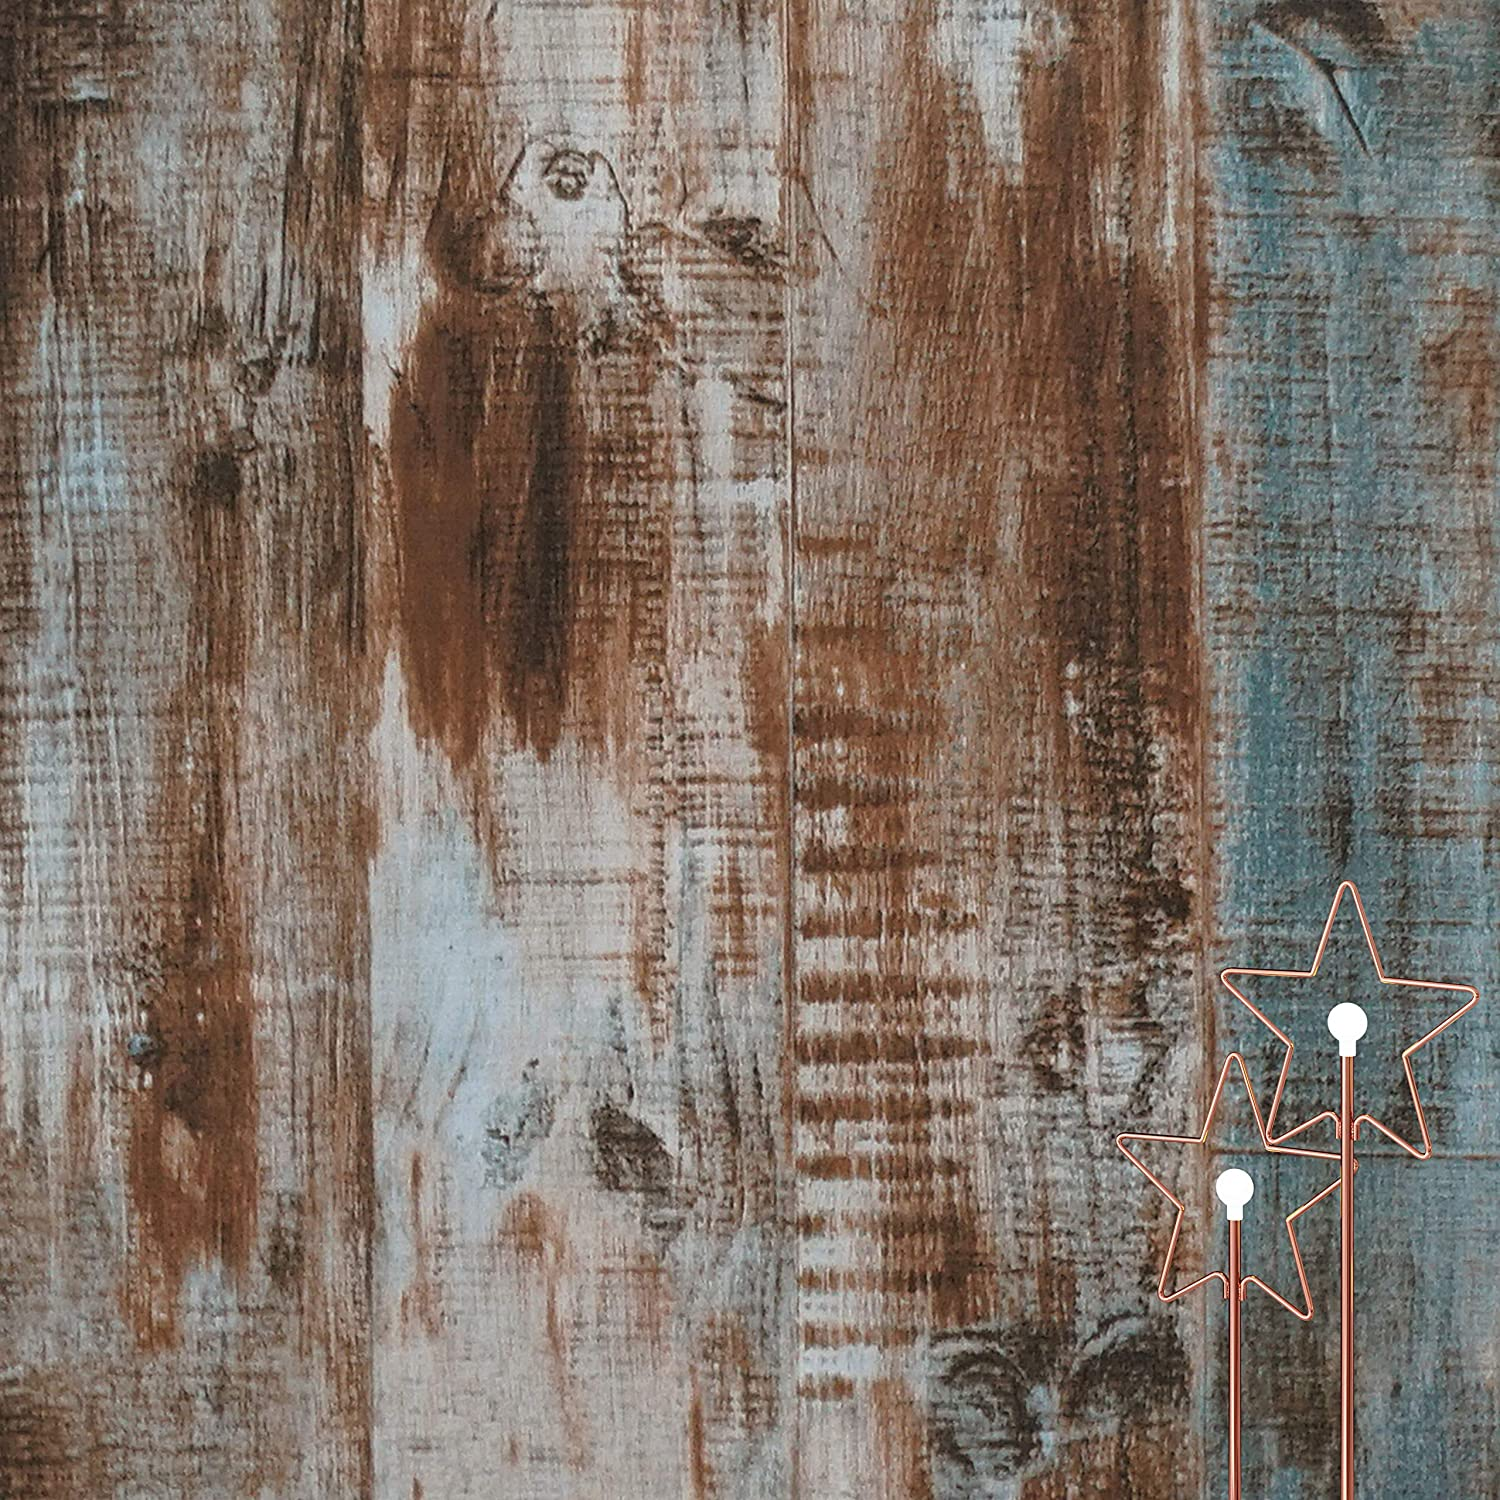 Dimoon 118''x17.7'' Wood Peel and Stick Wallpaper Blue Brown Wood Contact Paper Wood Wall Paper Removable Self Adhesive Faux Rustic Wood Contact Paper Grain Texture Vintage Reclaimed Vinyl Roll